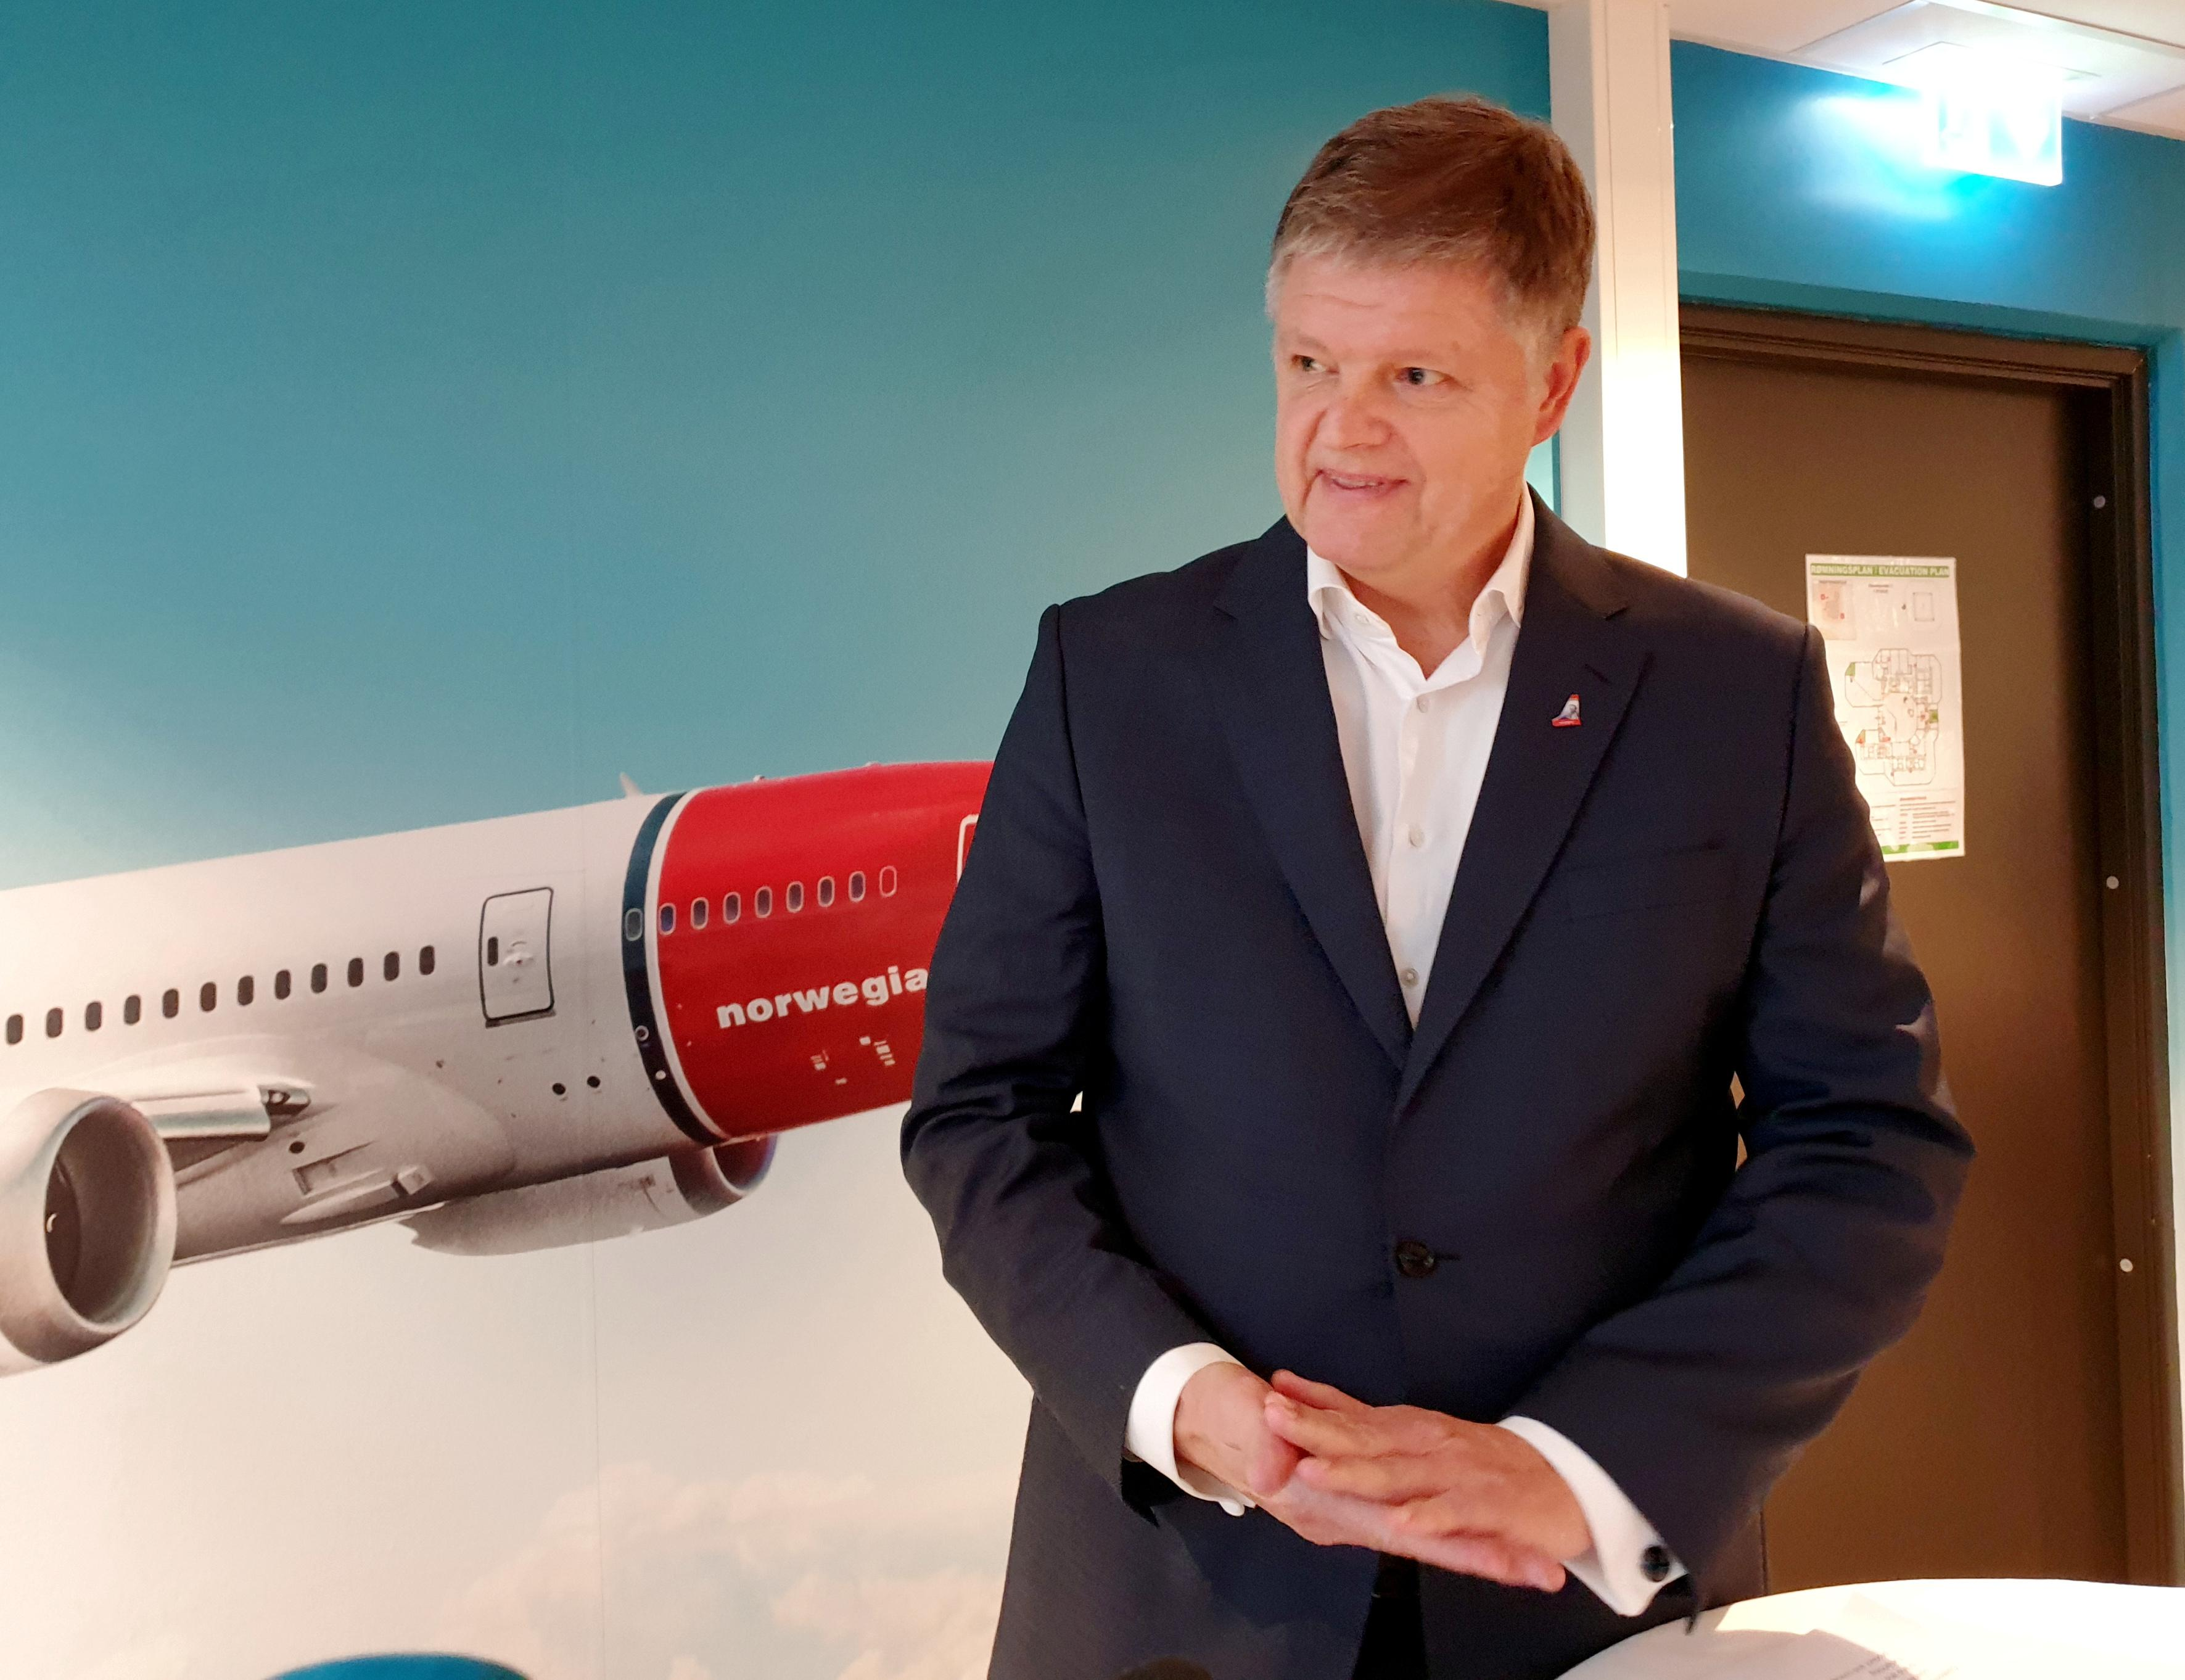 Norwegian Air appoints industry outsider as new CEO to lead...